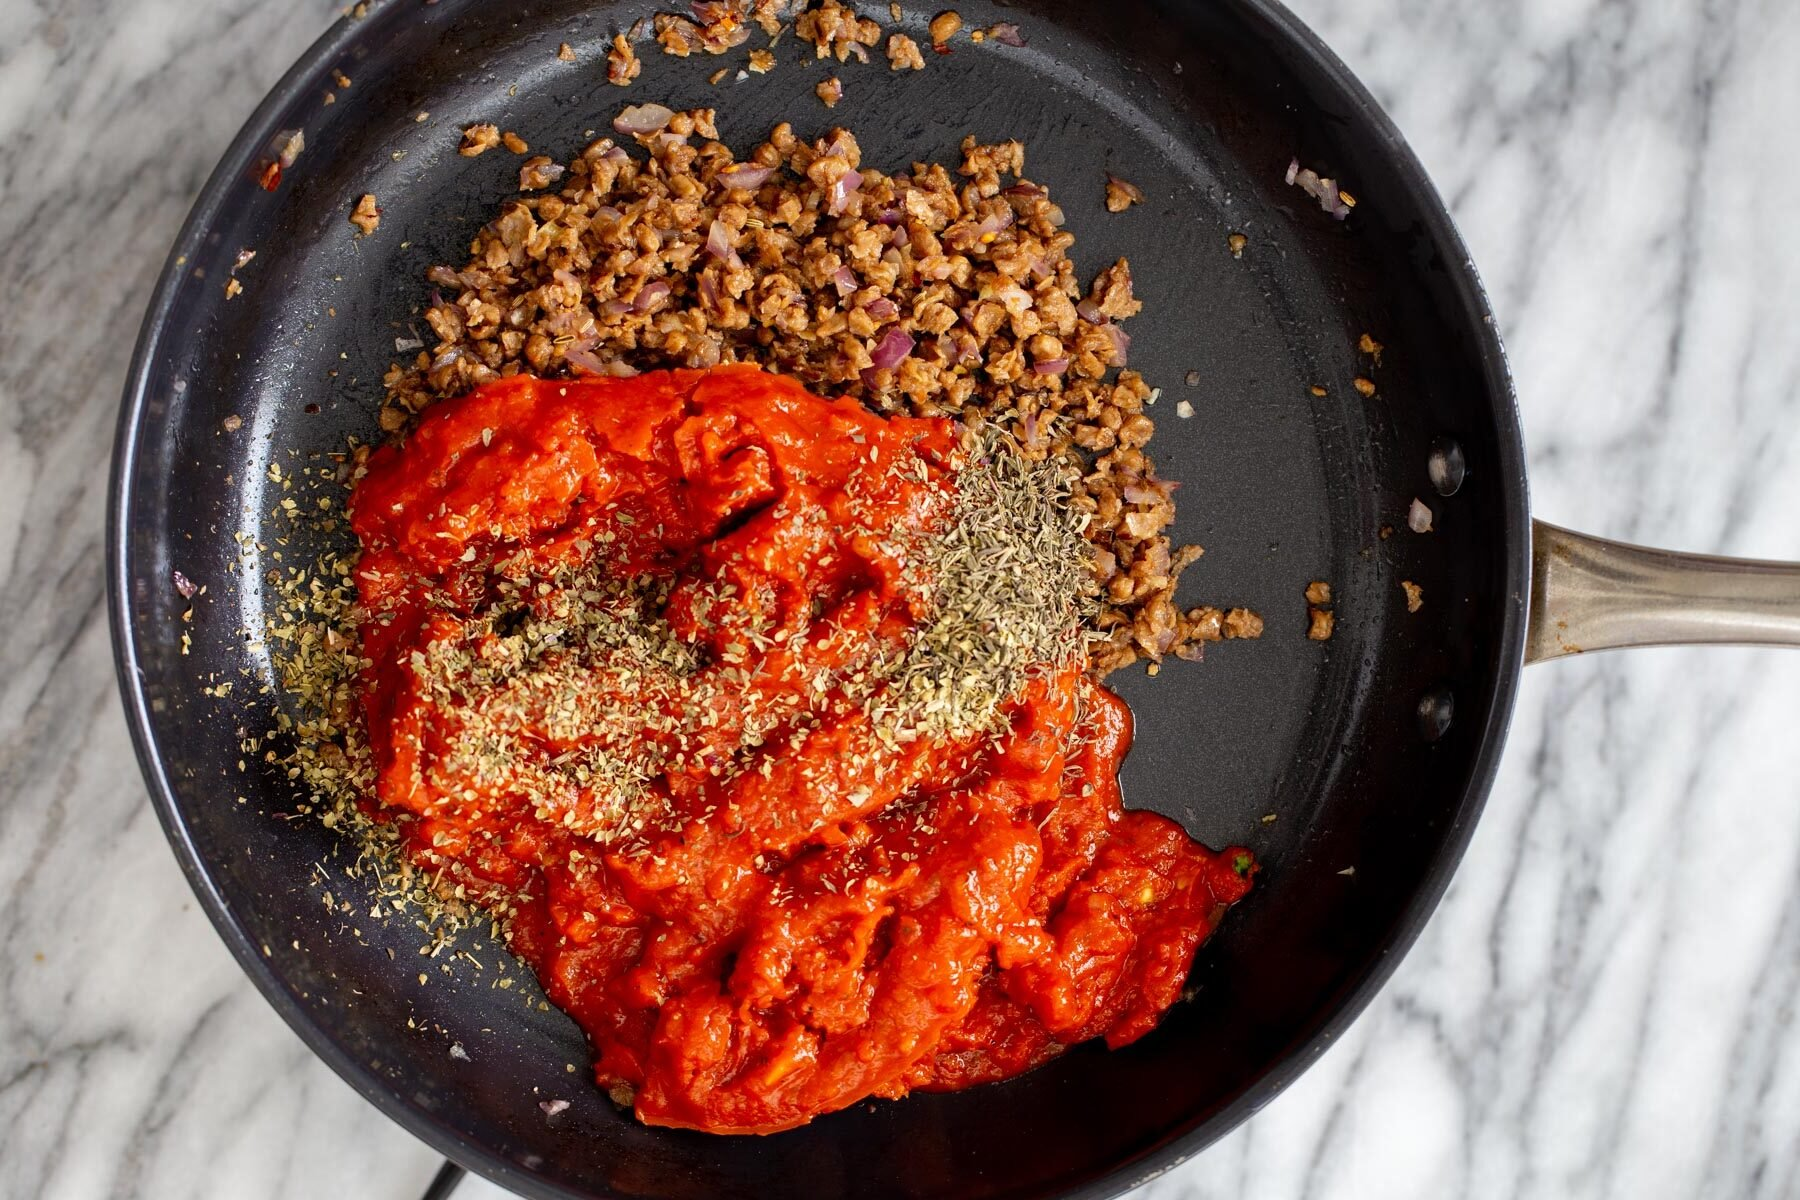 tomato sauce being added to a skillet with vegan meat crumbles